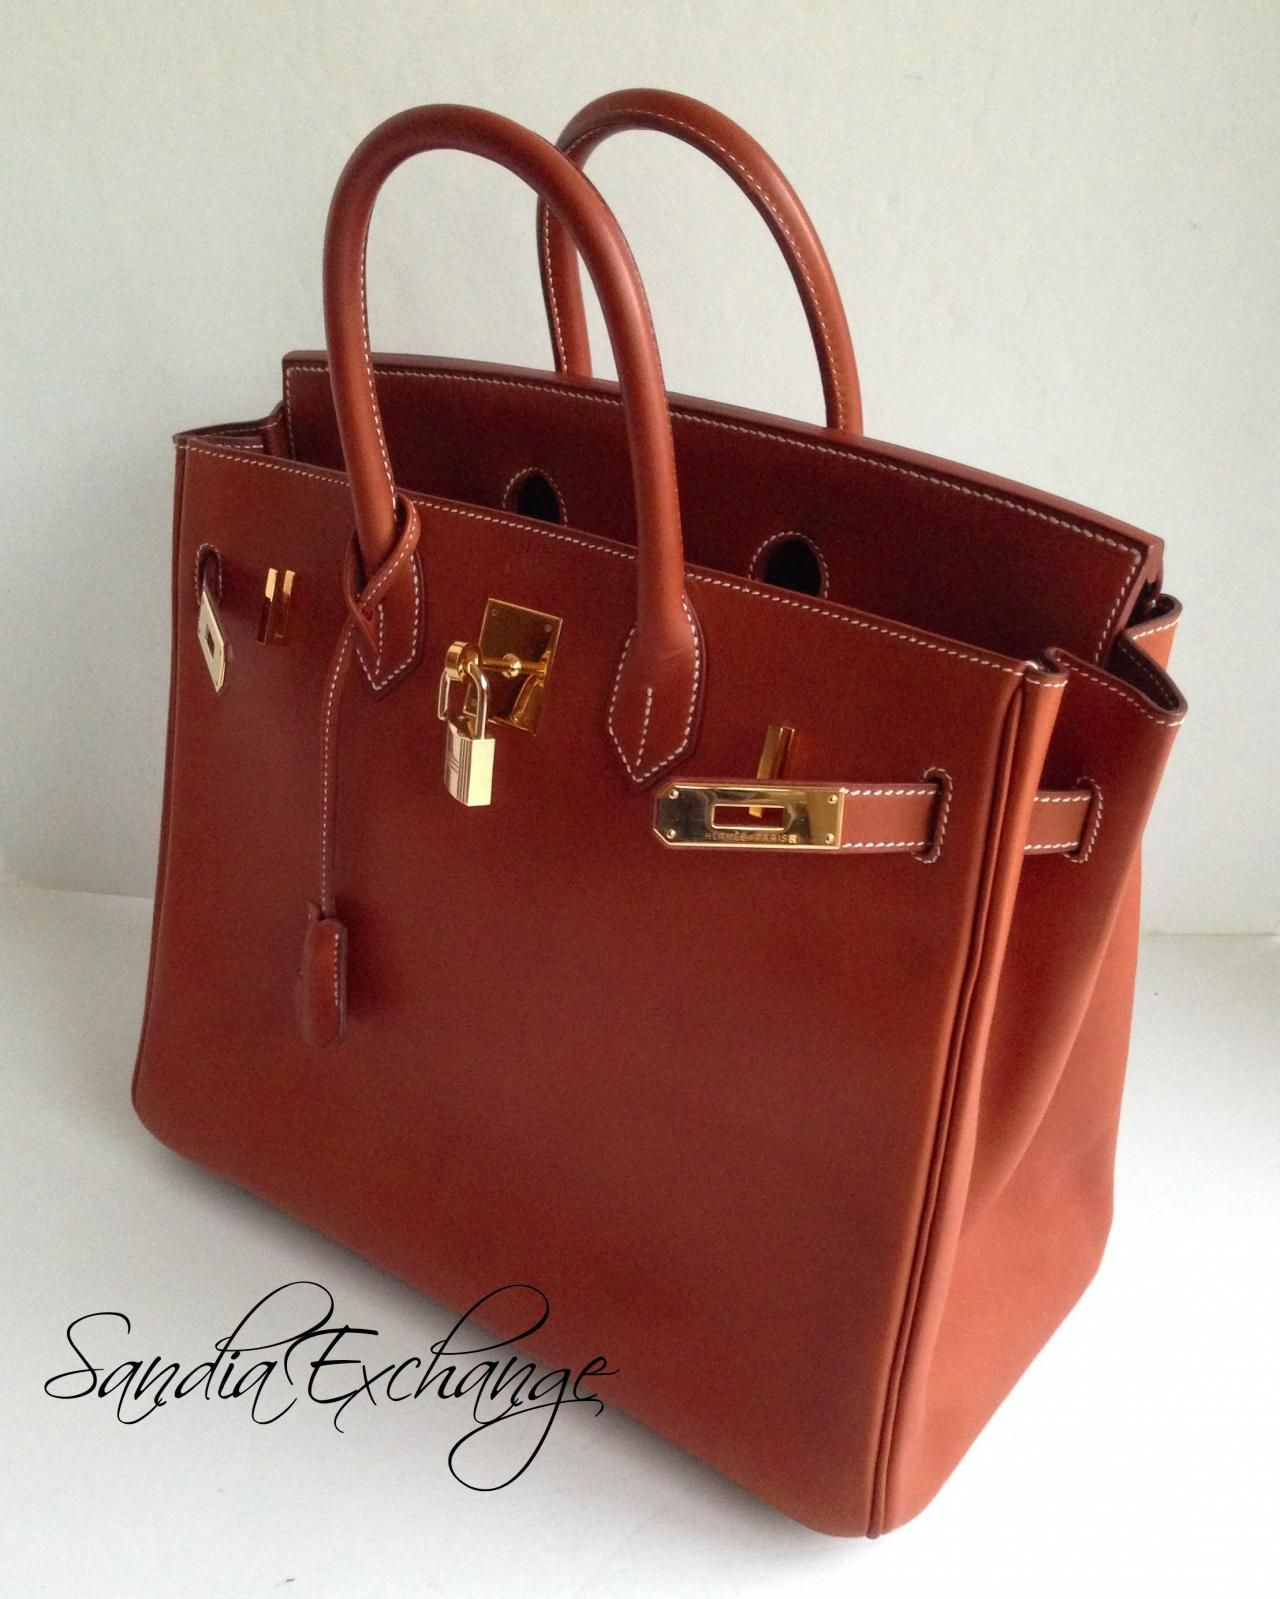 HERMES HAC 32 cm Barenia Birkin Fauve Gold Hardware Authentic HERMÈS -  Images hosted at BiggerBids.com e28eb9aff46e7